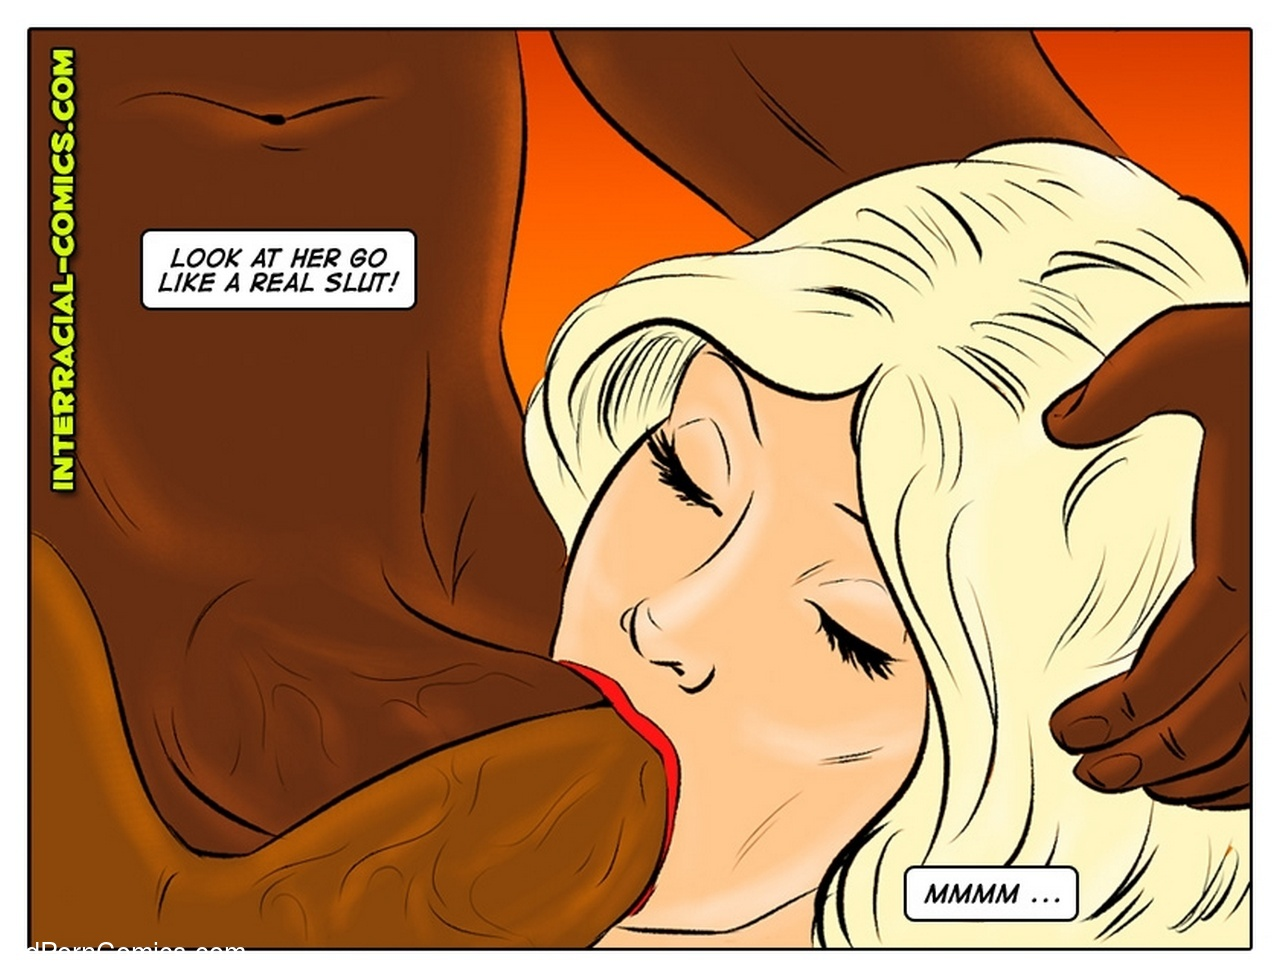 All-Part-Of-The-Job19 free sex comic